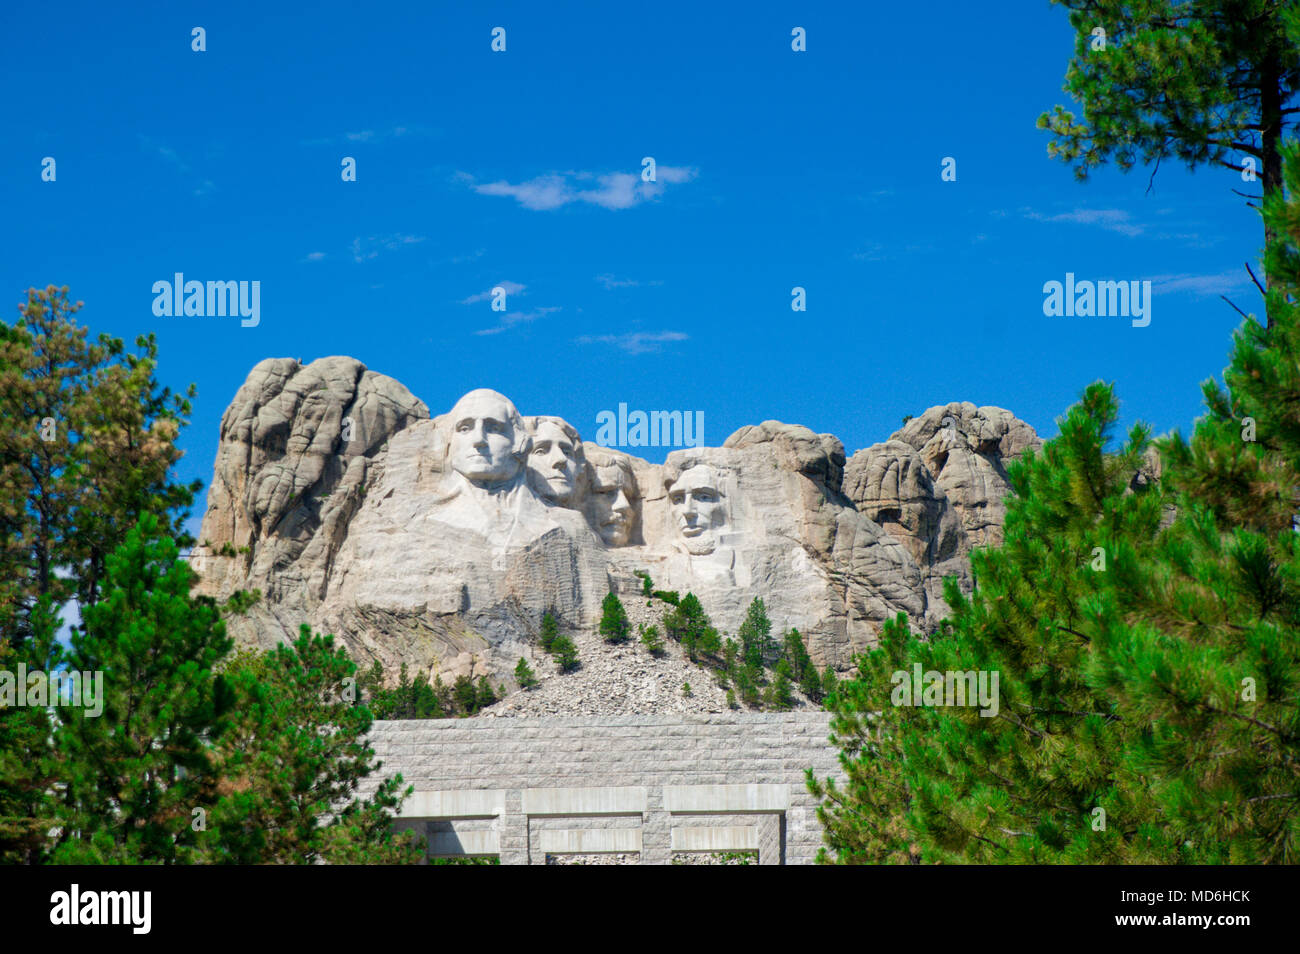 Mount Rushmore is the granite face located in a batholith in the Black Hills in Keystone, South Dakota, United States. - Stock Image